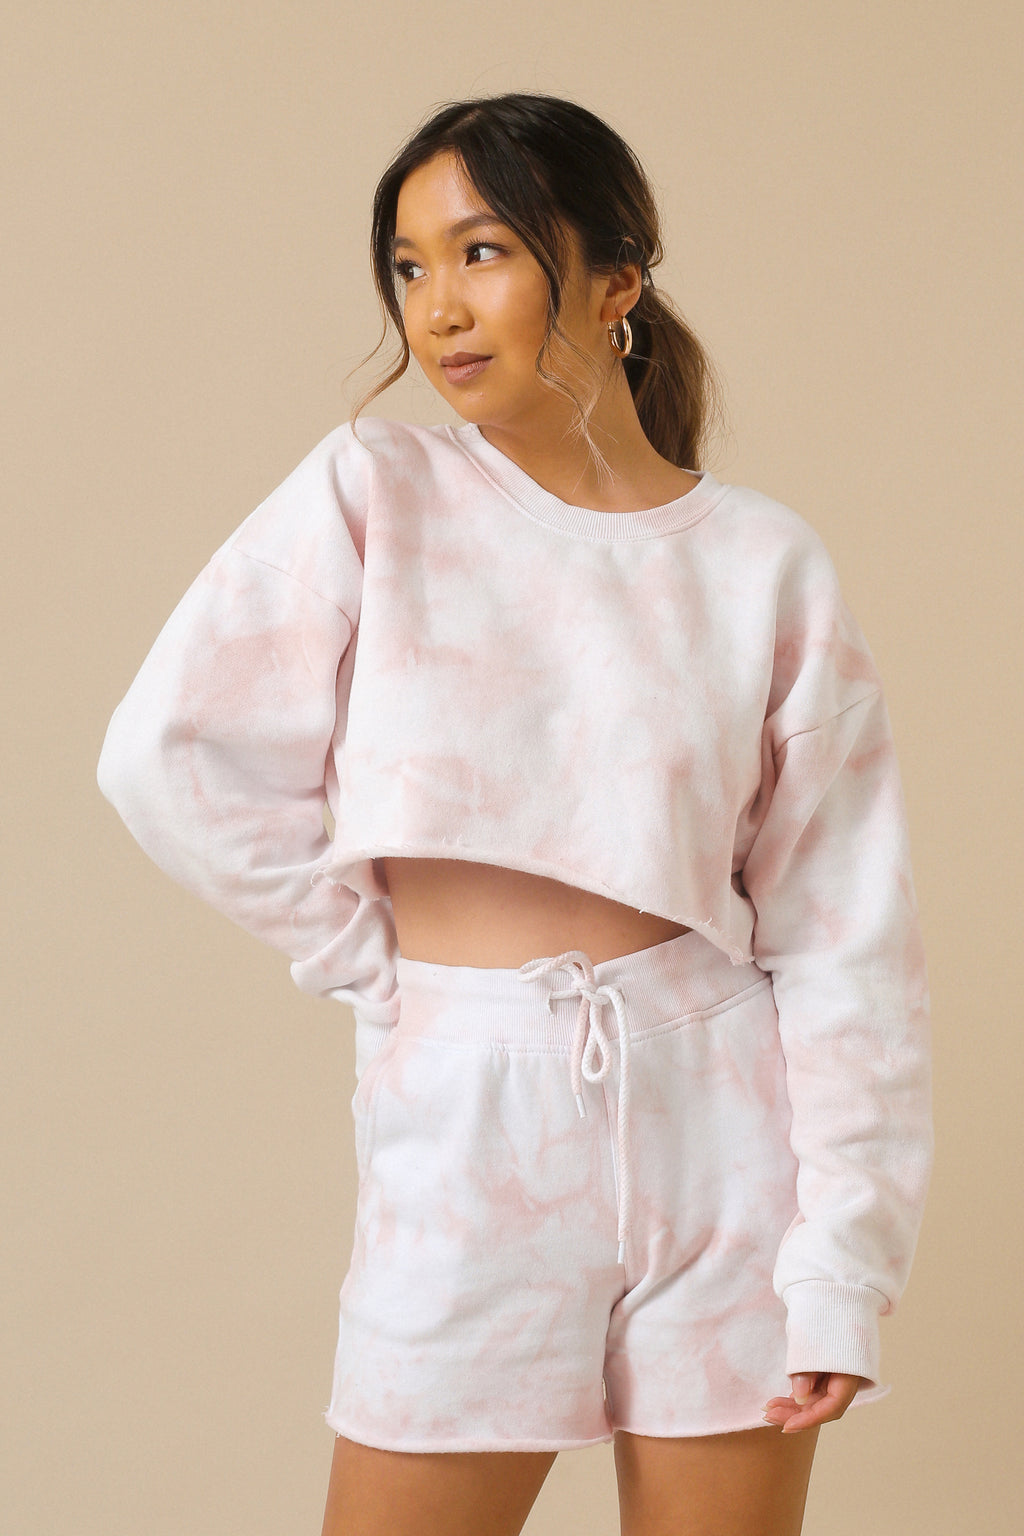 Blush Pink Tie Dye Crop Sweater